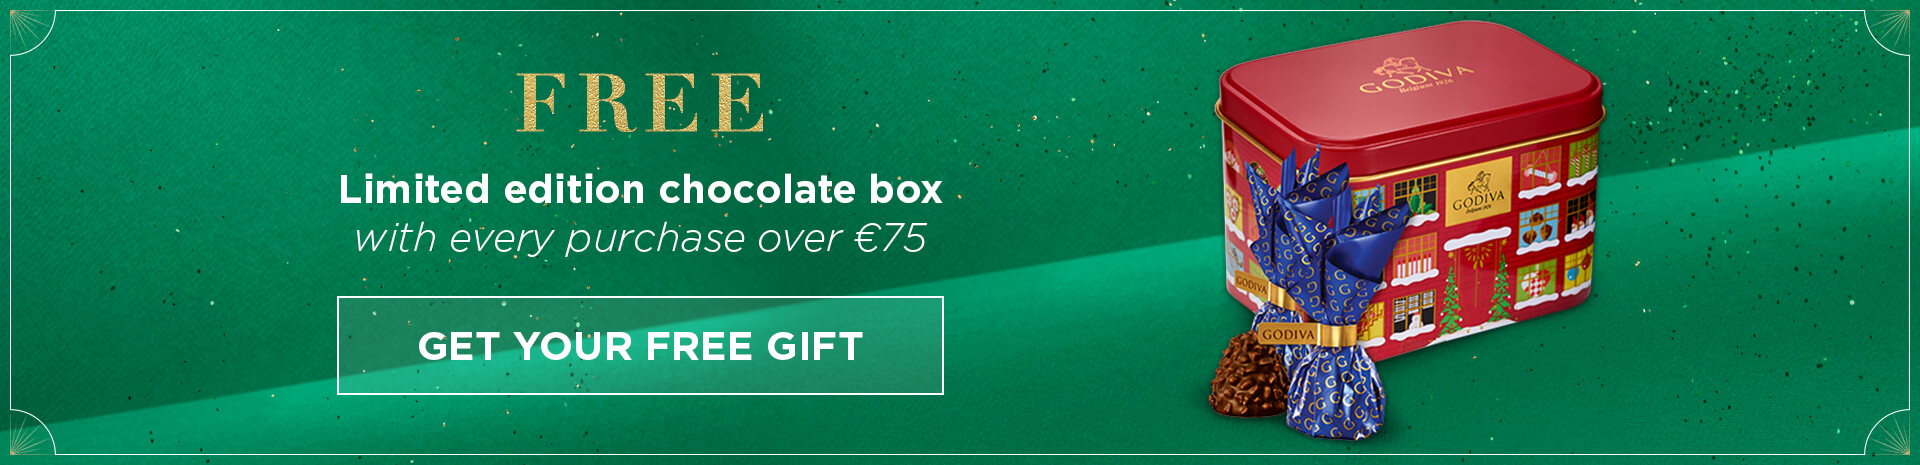 Free chocolate box over €75